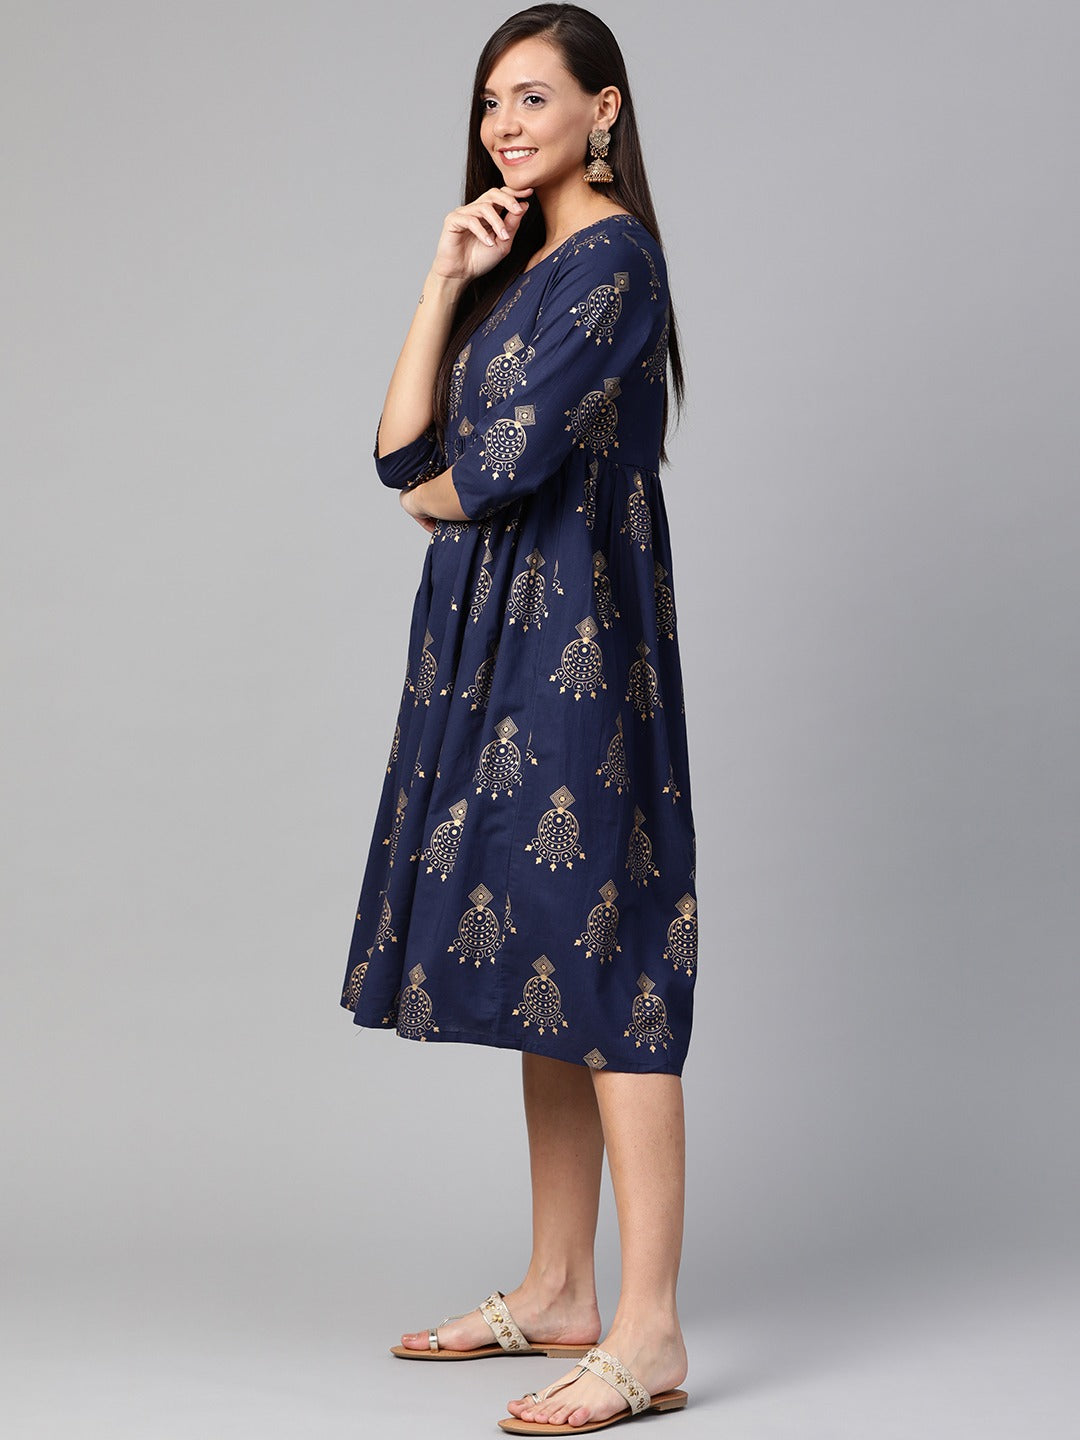 Navy Blue & Golden Quirky Printed A-Line Dress